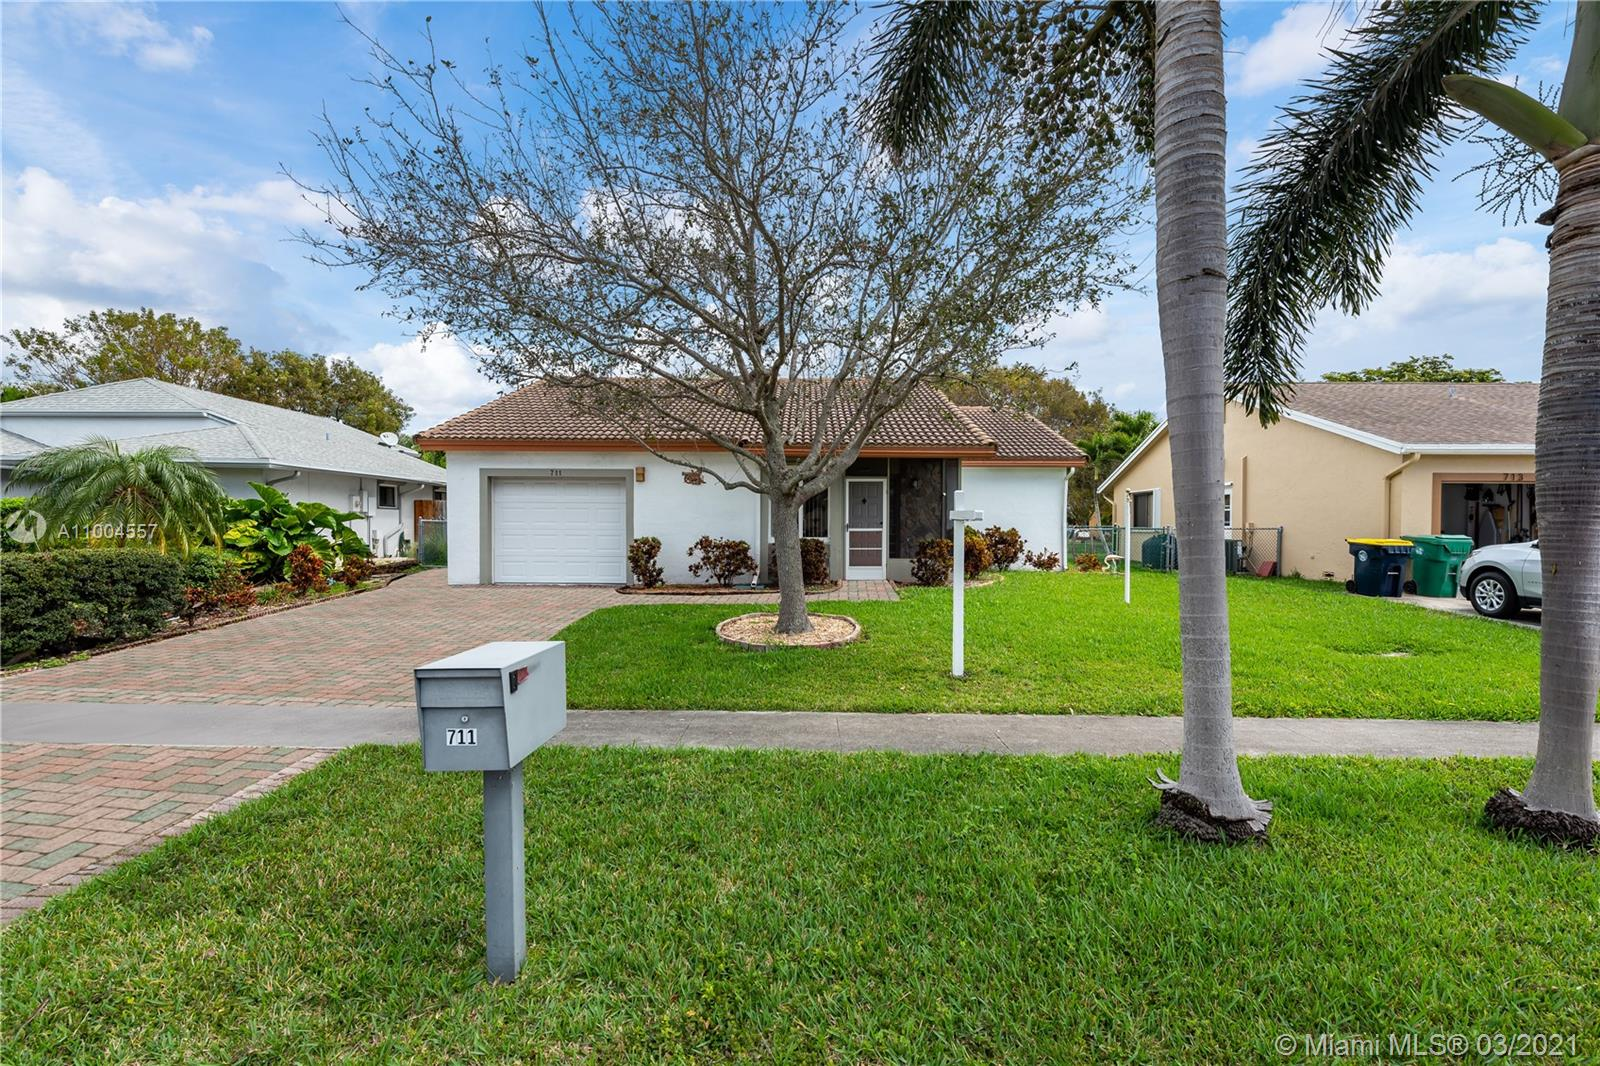 Beautifully well maintained 2-bedroom, 2 full bathrooms plus a Den and a 1 car Garage. This home perfectly located in the premiere East Dania Beach area. Less than 5 minutes from the beach! IMPACT WINDOWS THROUGHOUT, newer tile ROOF, oversized dining and living room with ample space for an office. Spacious lot with the uniqueness of an additional back driveway, perfect for parking RV, boat or extra car. Private back yard. This quiet neighborhood is conveniently located between Downtown Fort Lauderdale and Hollywood, located less than 3 miles from FLL airport. Come see for yourself how awesome this house is! This home will not last!